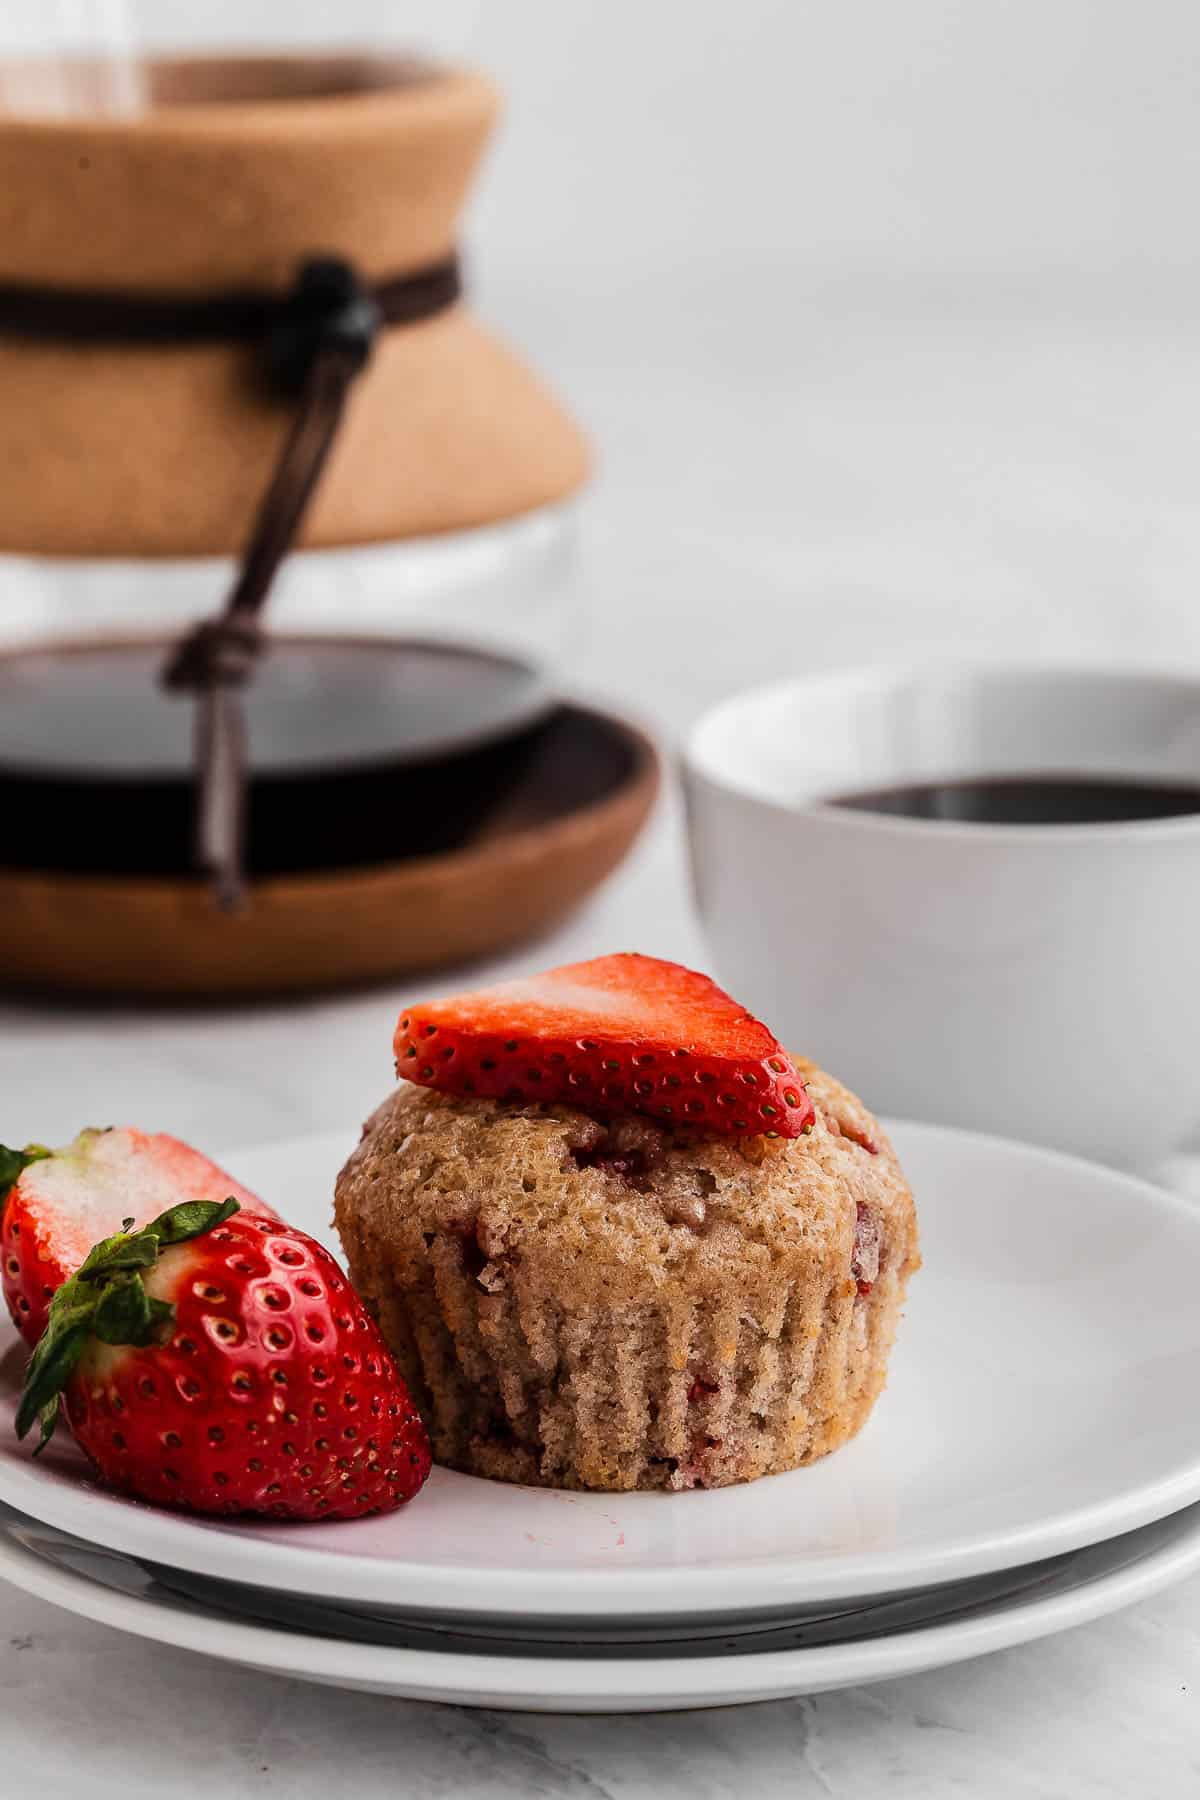 Strawberry muffin on a plate with coffee cup.